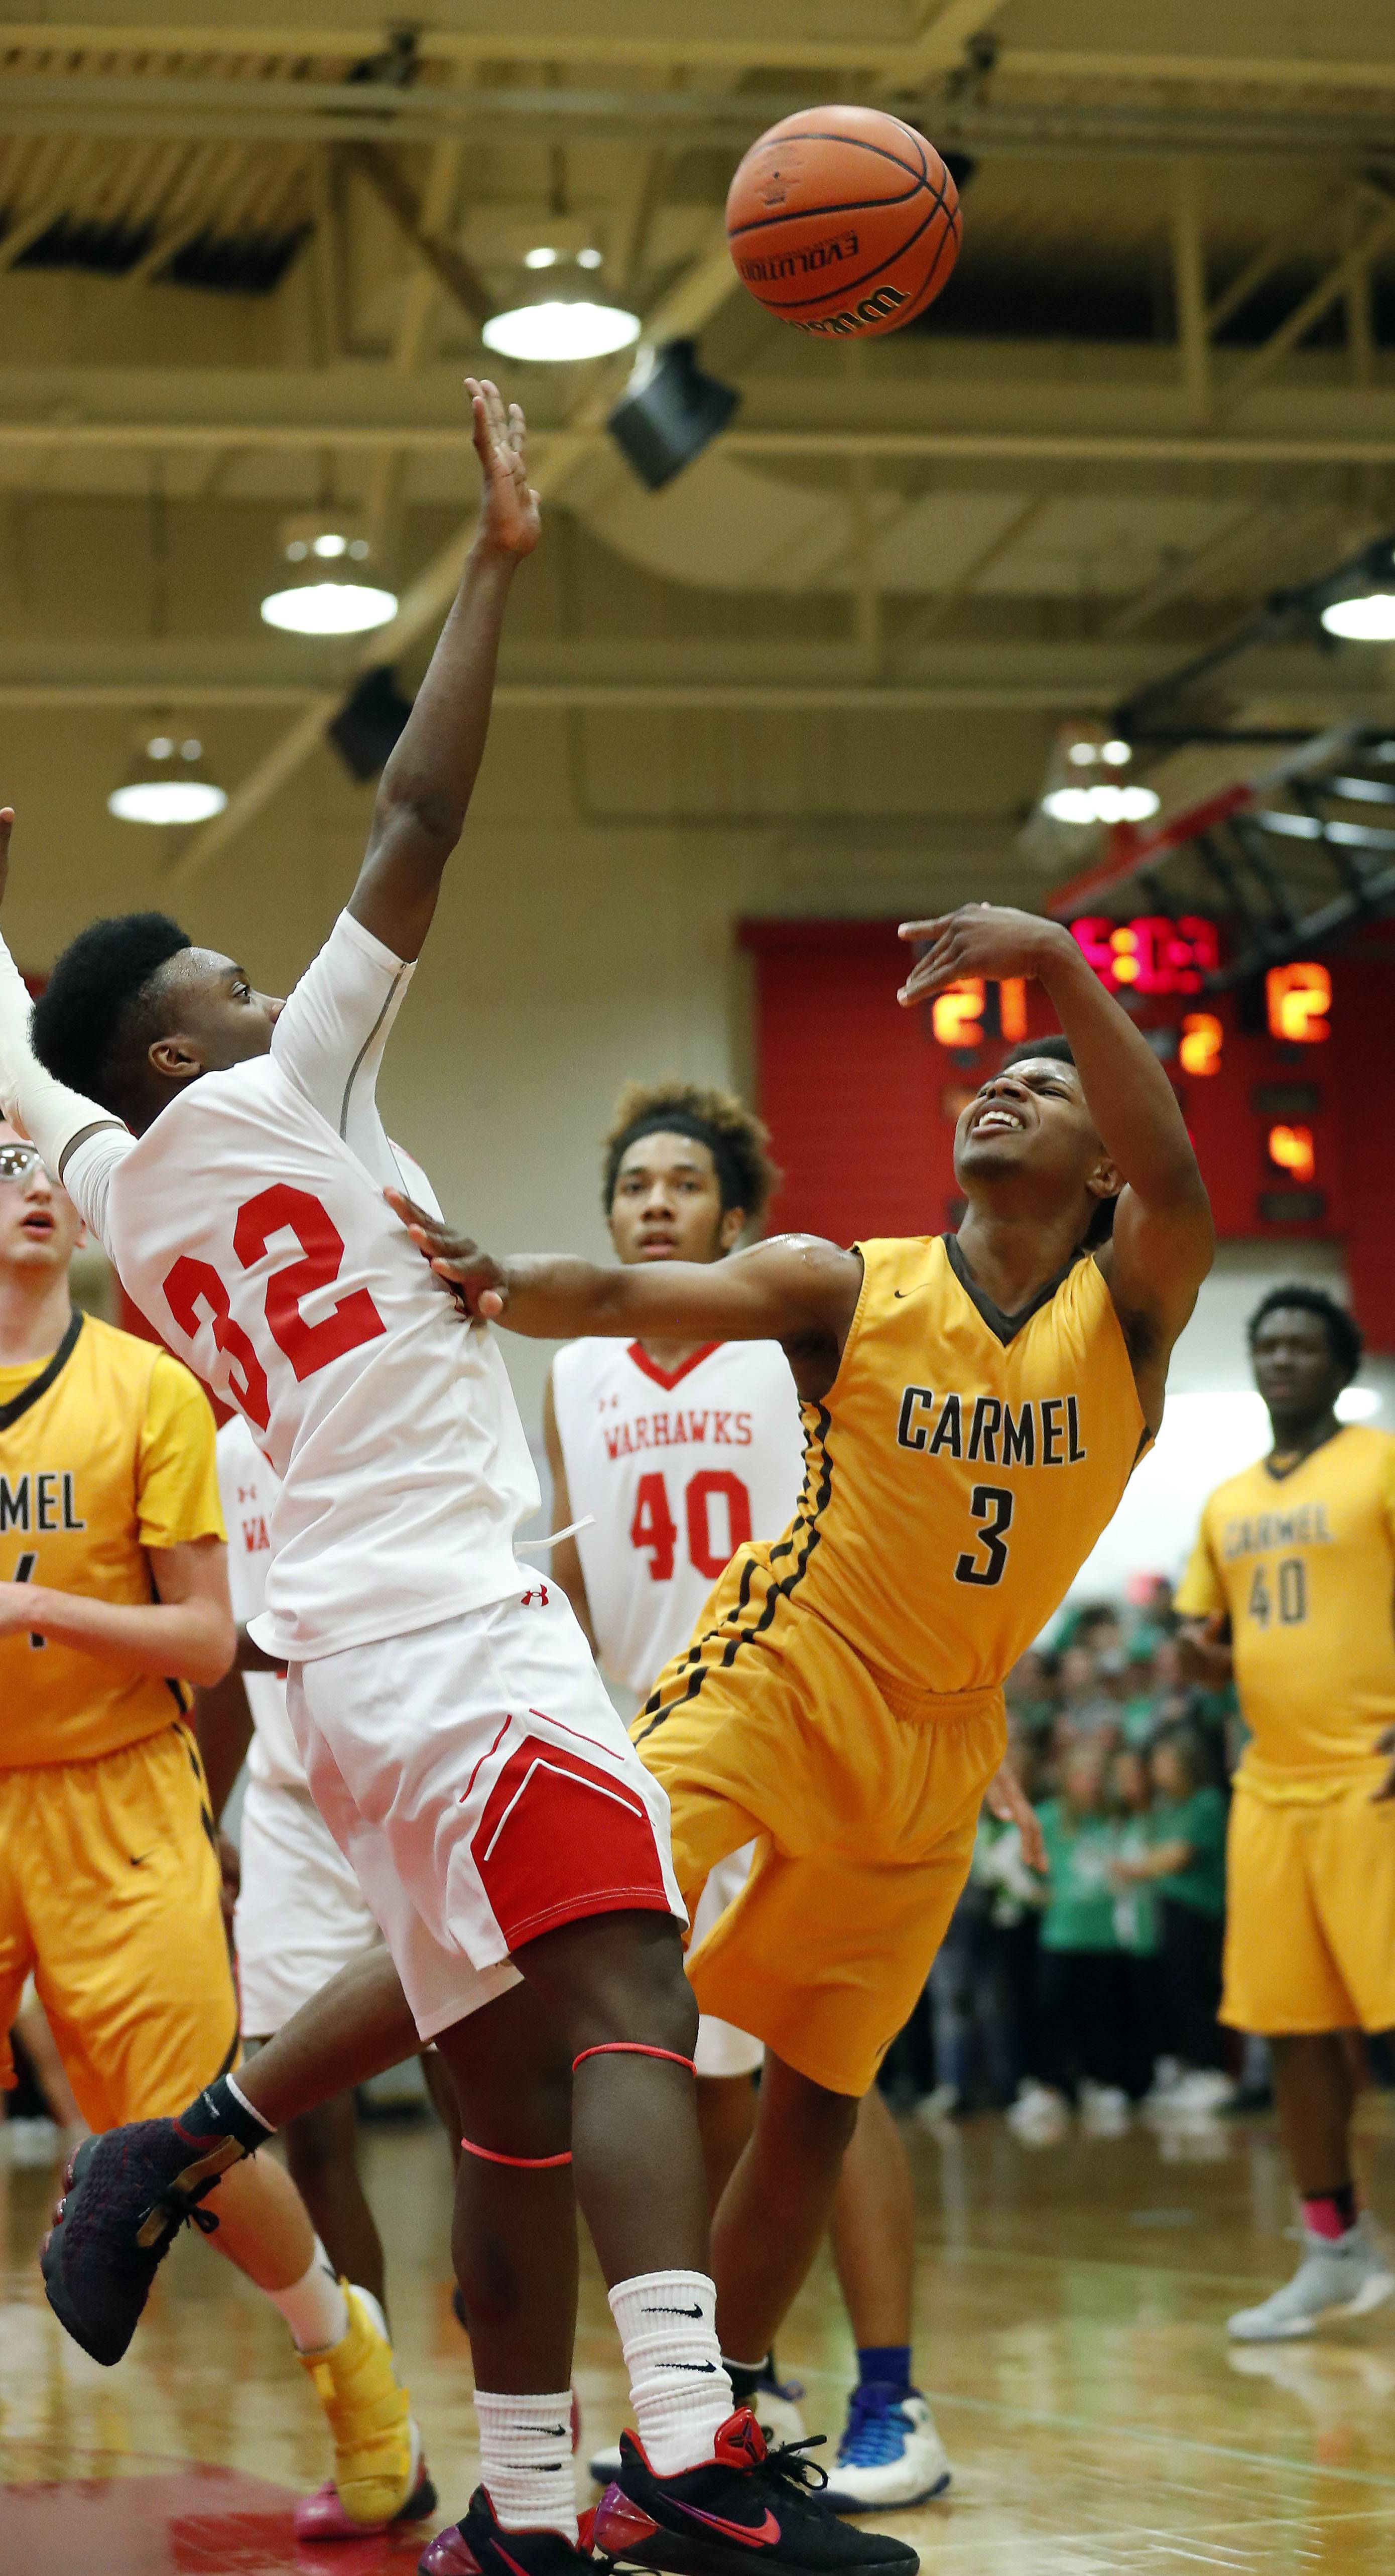 Carmel's Zion Kilpatrick (3) shoots on North Chicago's DyShawn Gales during Class 3A sectional semifinal play Wednesday at North Chicago.